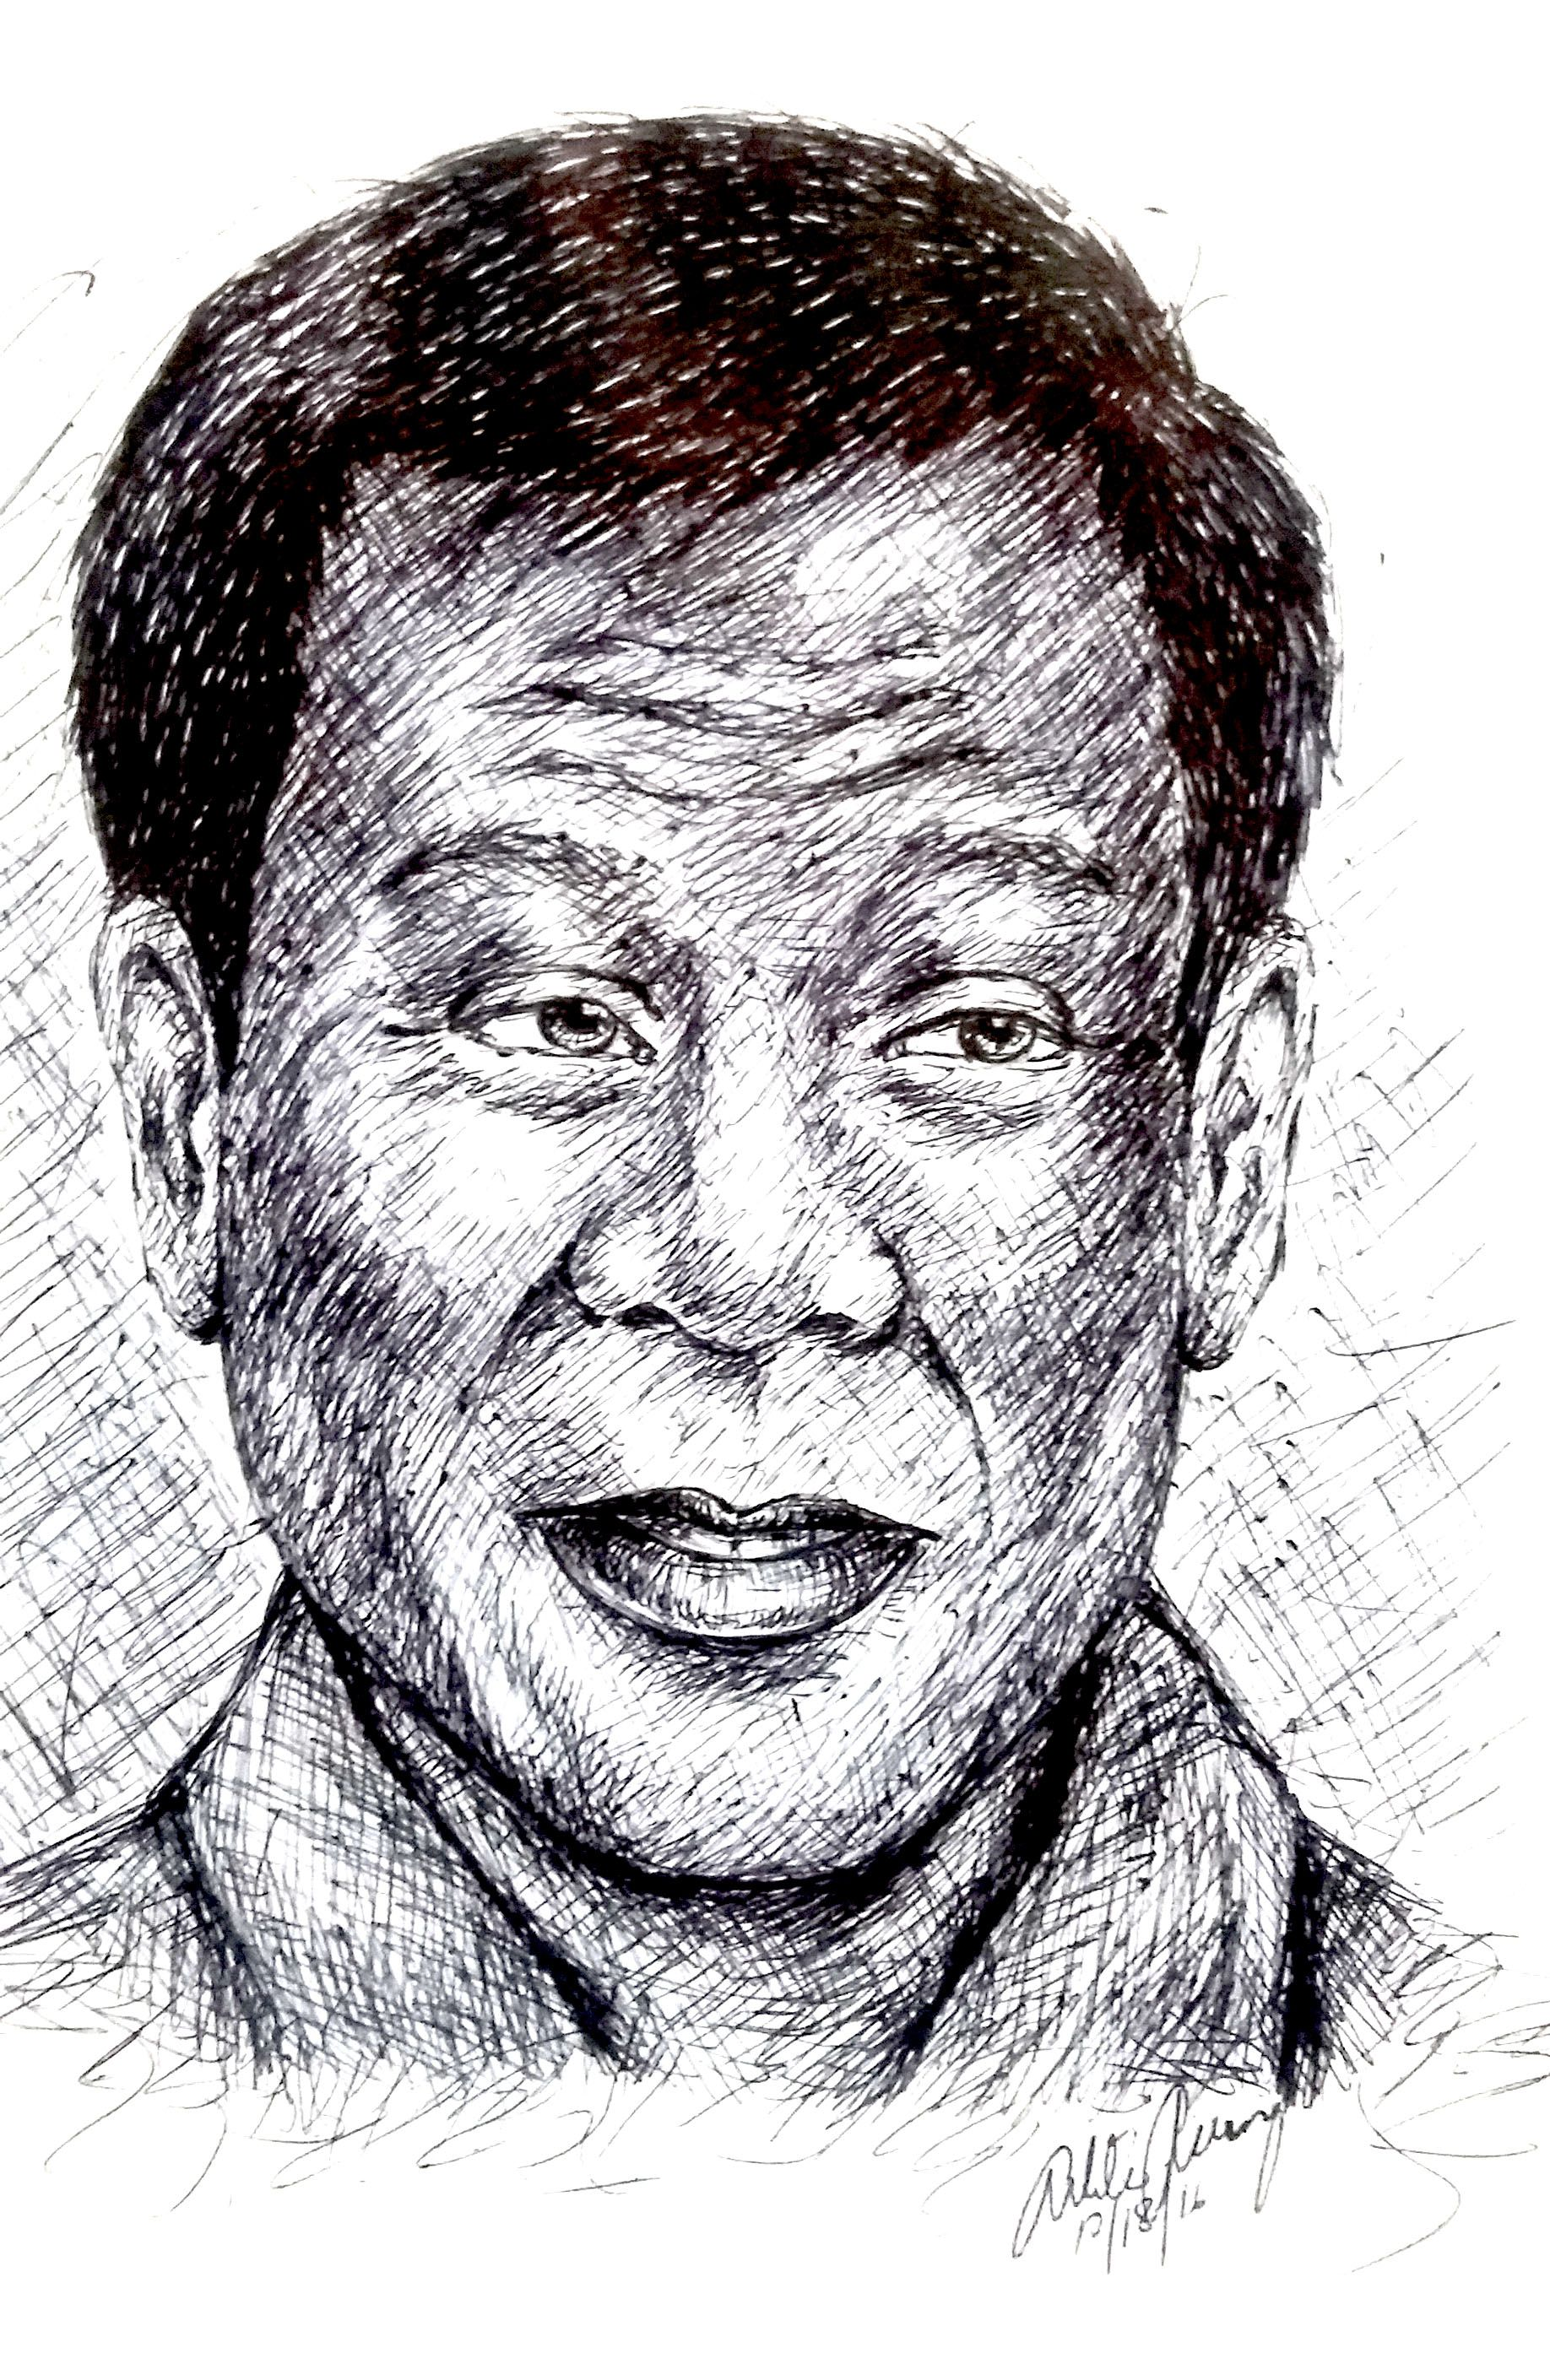 Rodrigo Rody Roa Duterte Also Known As Digong Is A Filipino Politician And Jurist Who Is The 16th And Curre Ink Pen Drawings Cartoon News Editorial Cartoon